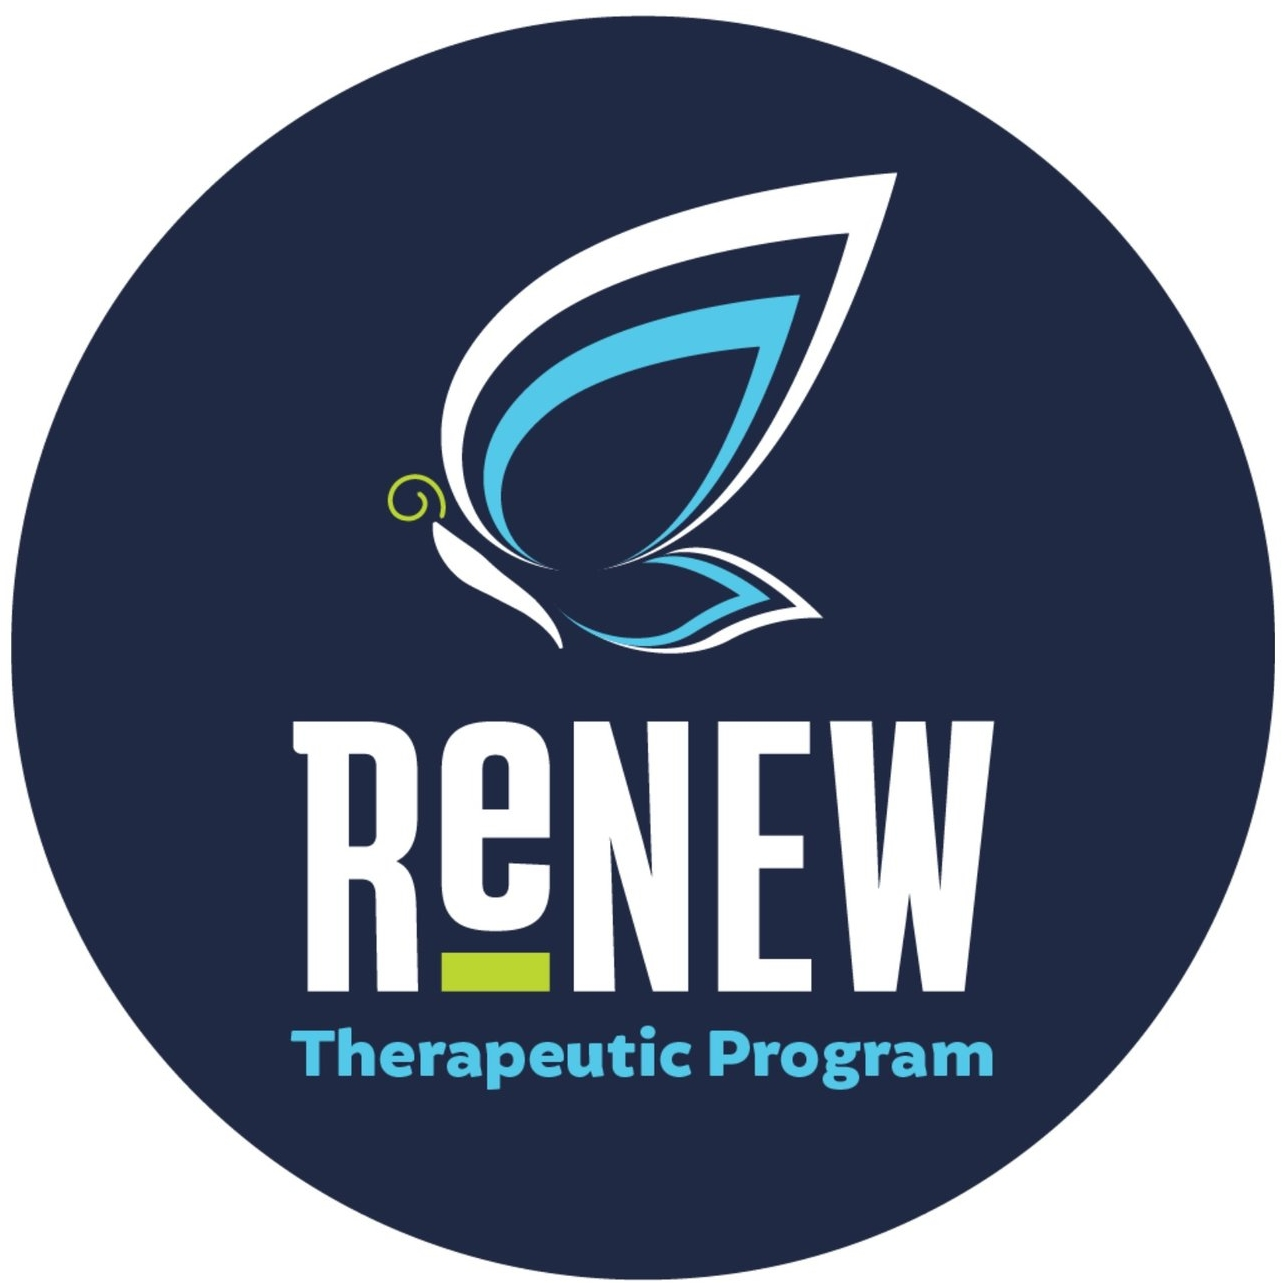 ReNEW Therapeutic Program